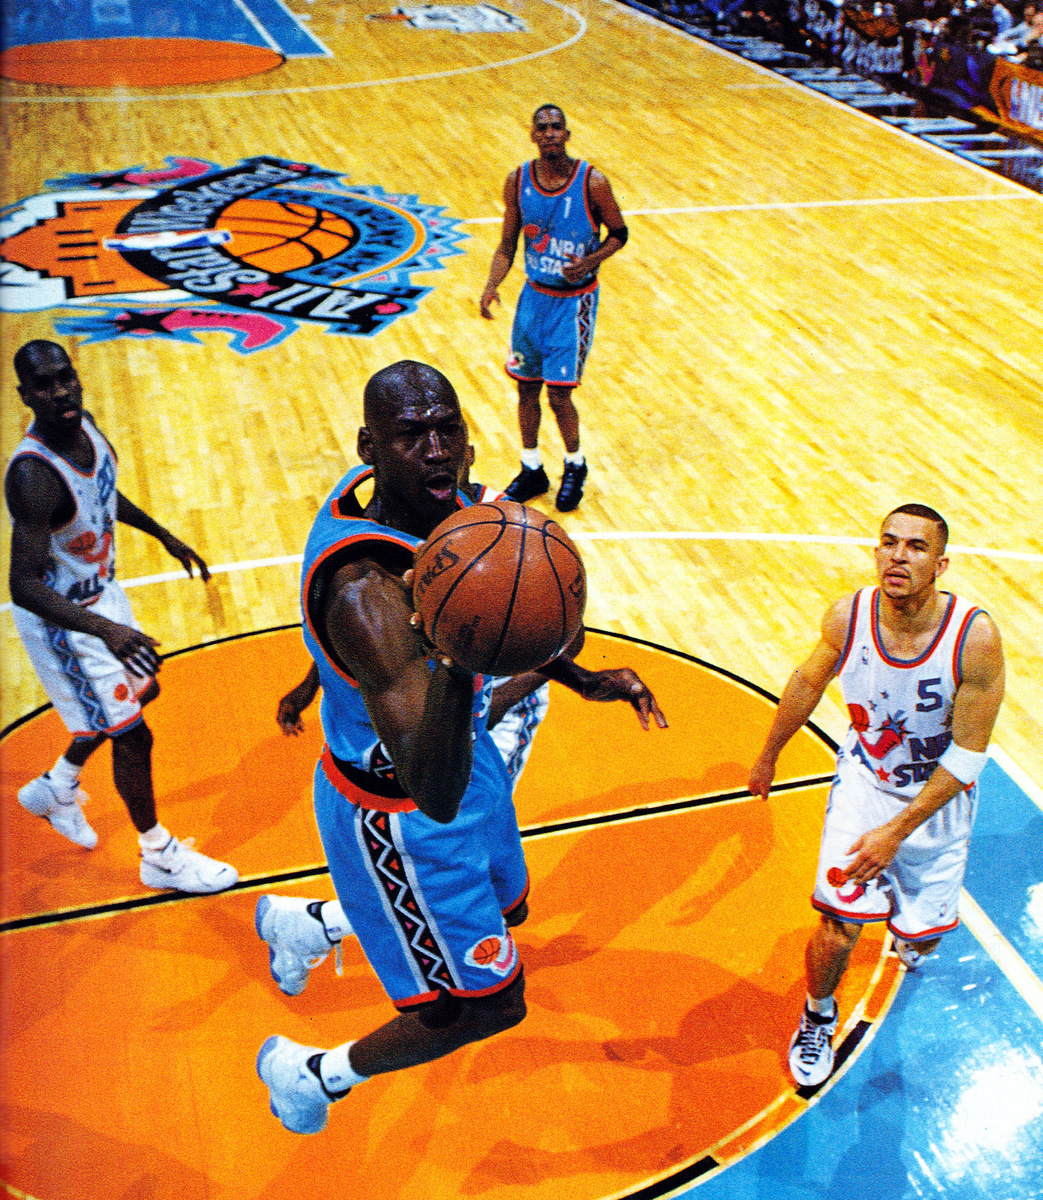 ec0a5119c6a Flashback // The 1996 NBA All Star Game Shoes | Sole Collector